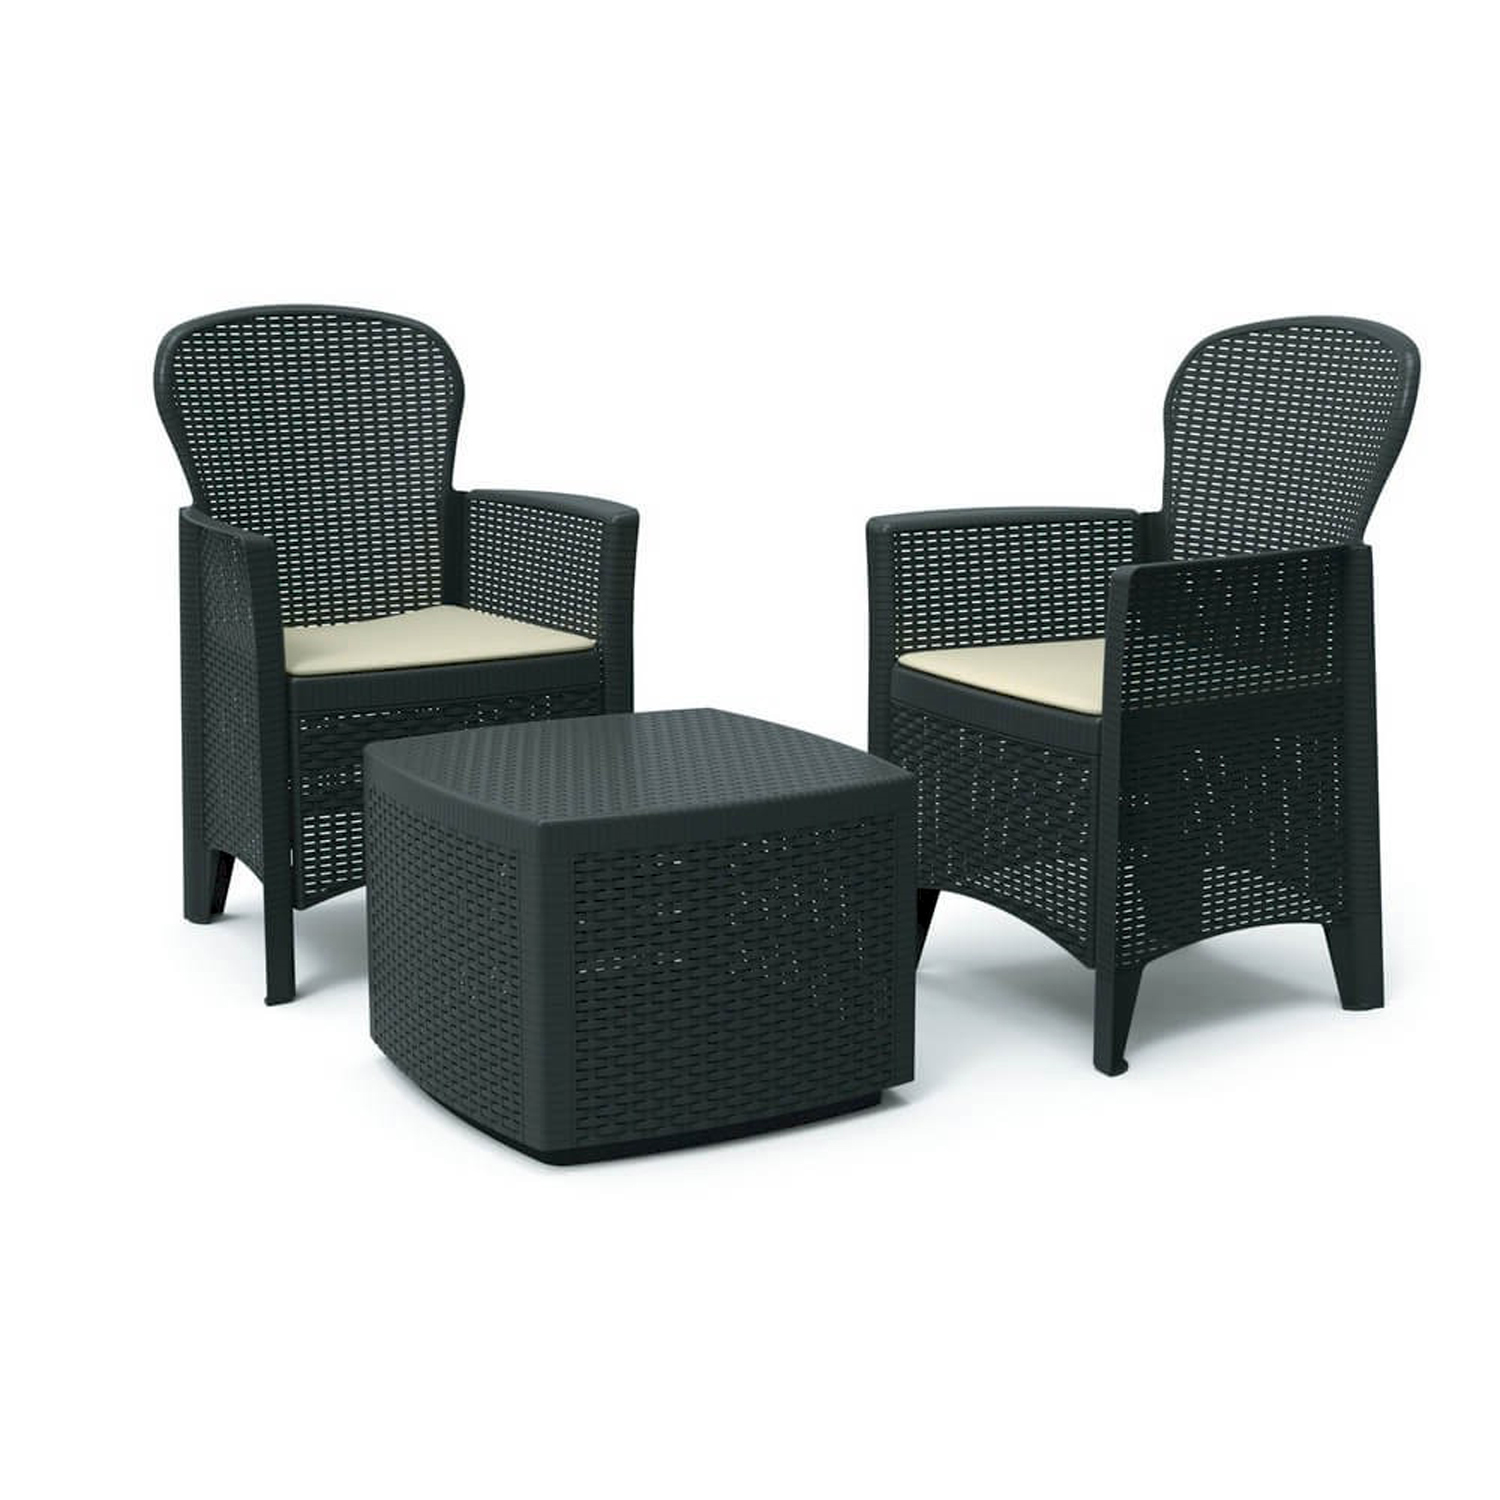 garten set sessel stuhlpolster tisch anthrazit rattan optik garten gartentische bistrotische. Black Bedroom Furniture Sets. Home Design Ideas